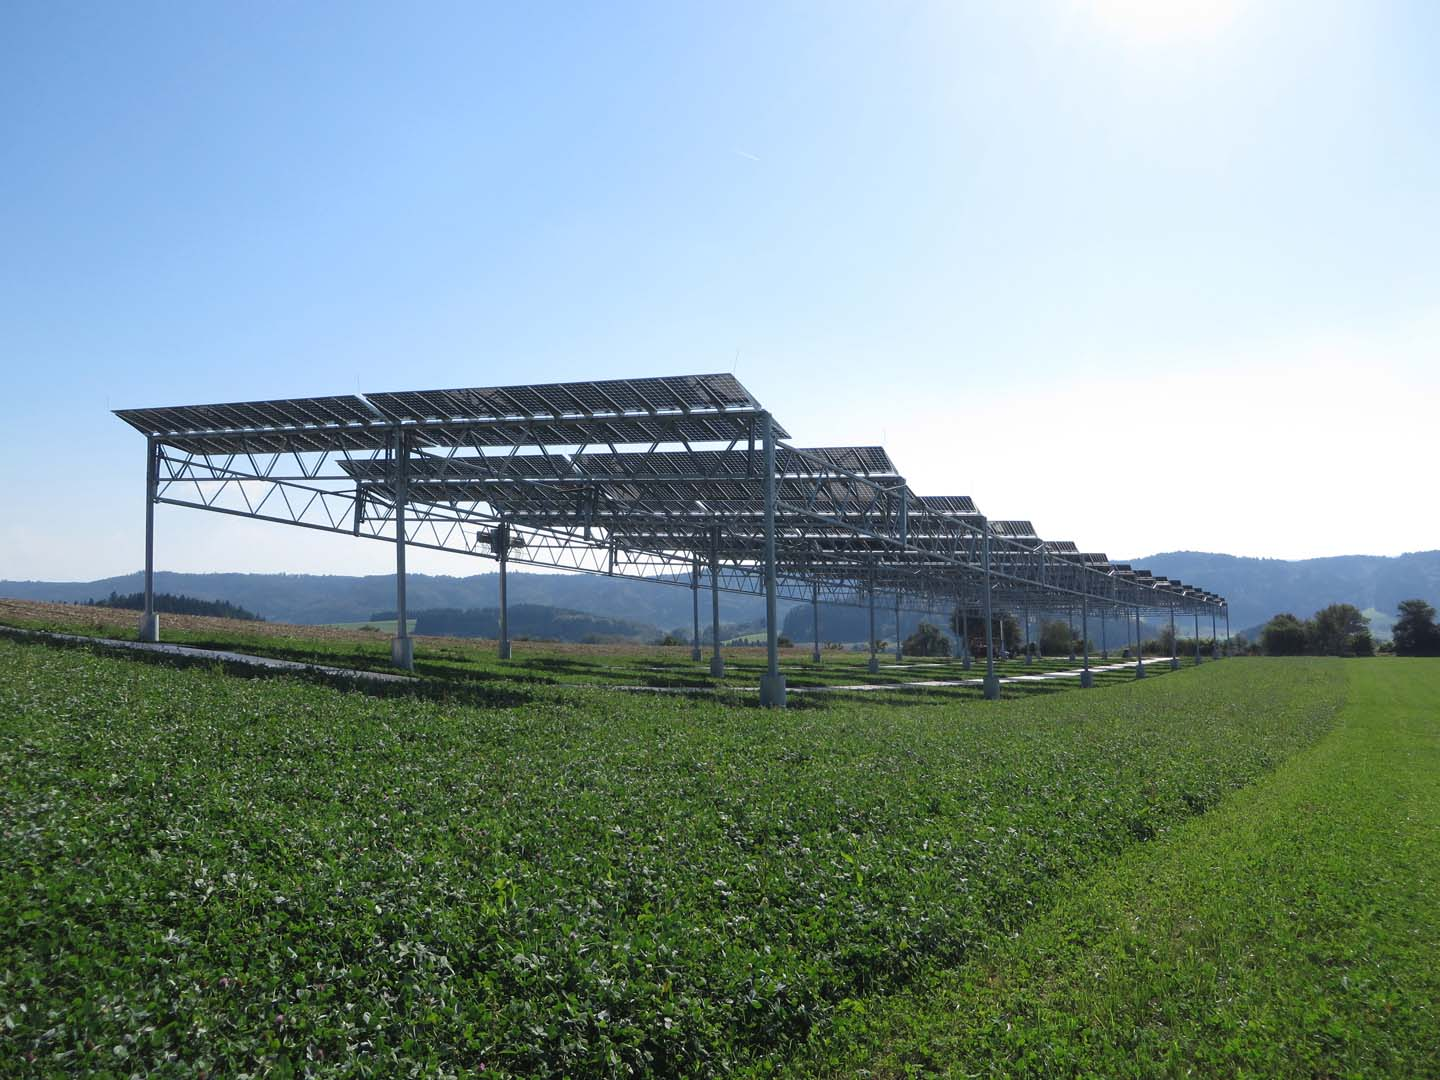 Winter wheat, potatoes, celeriac and clover grass were said to have been the first crops to be tested, using a south-west orientation of the APV system and extra distance between the five meter high rows of bifacial glass-glass PV modules to ensure that the crops were exposed to uniform solar radiation. Image: Fraunhofer ISE